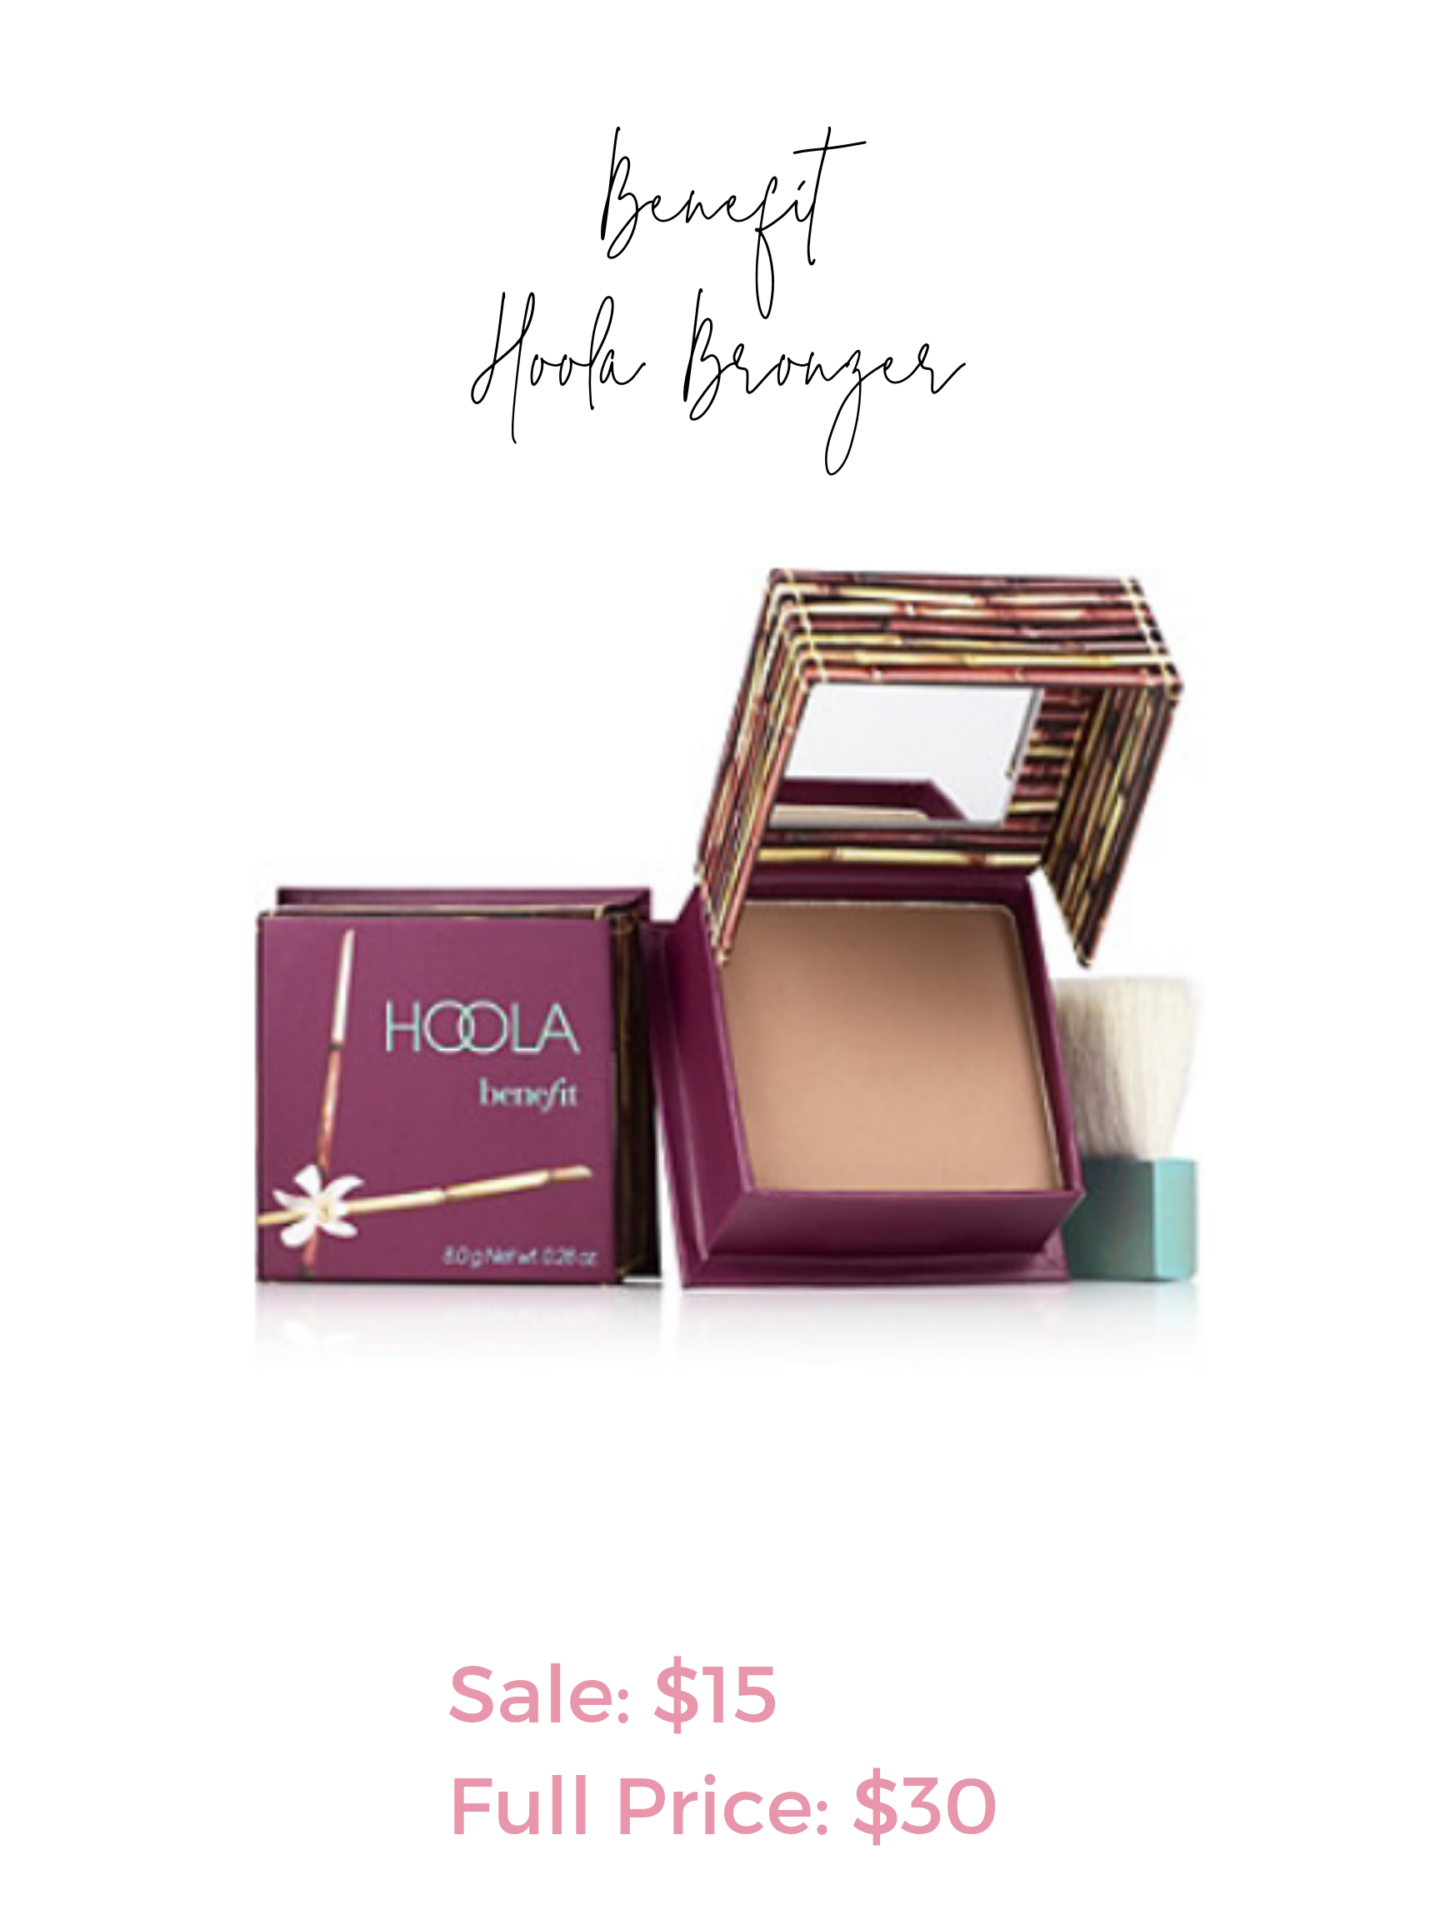 Ulta 21 days of beauty sale - Benefit Hoola Bronzer